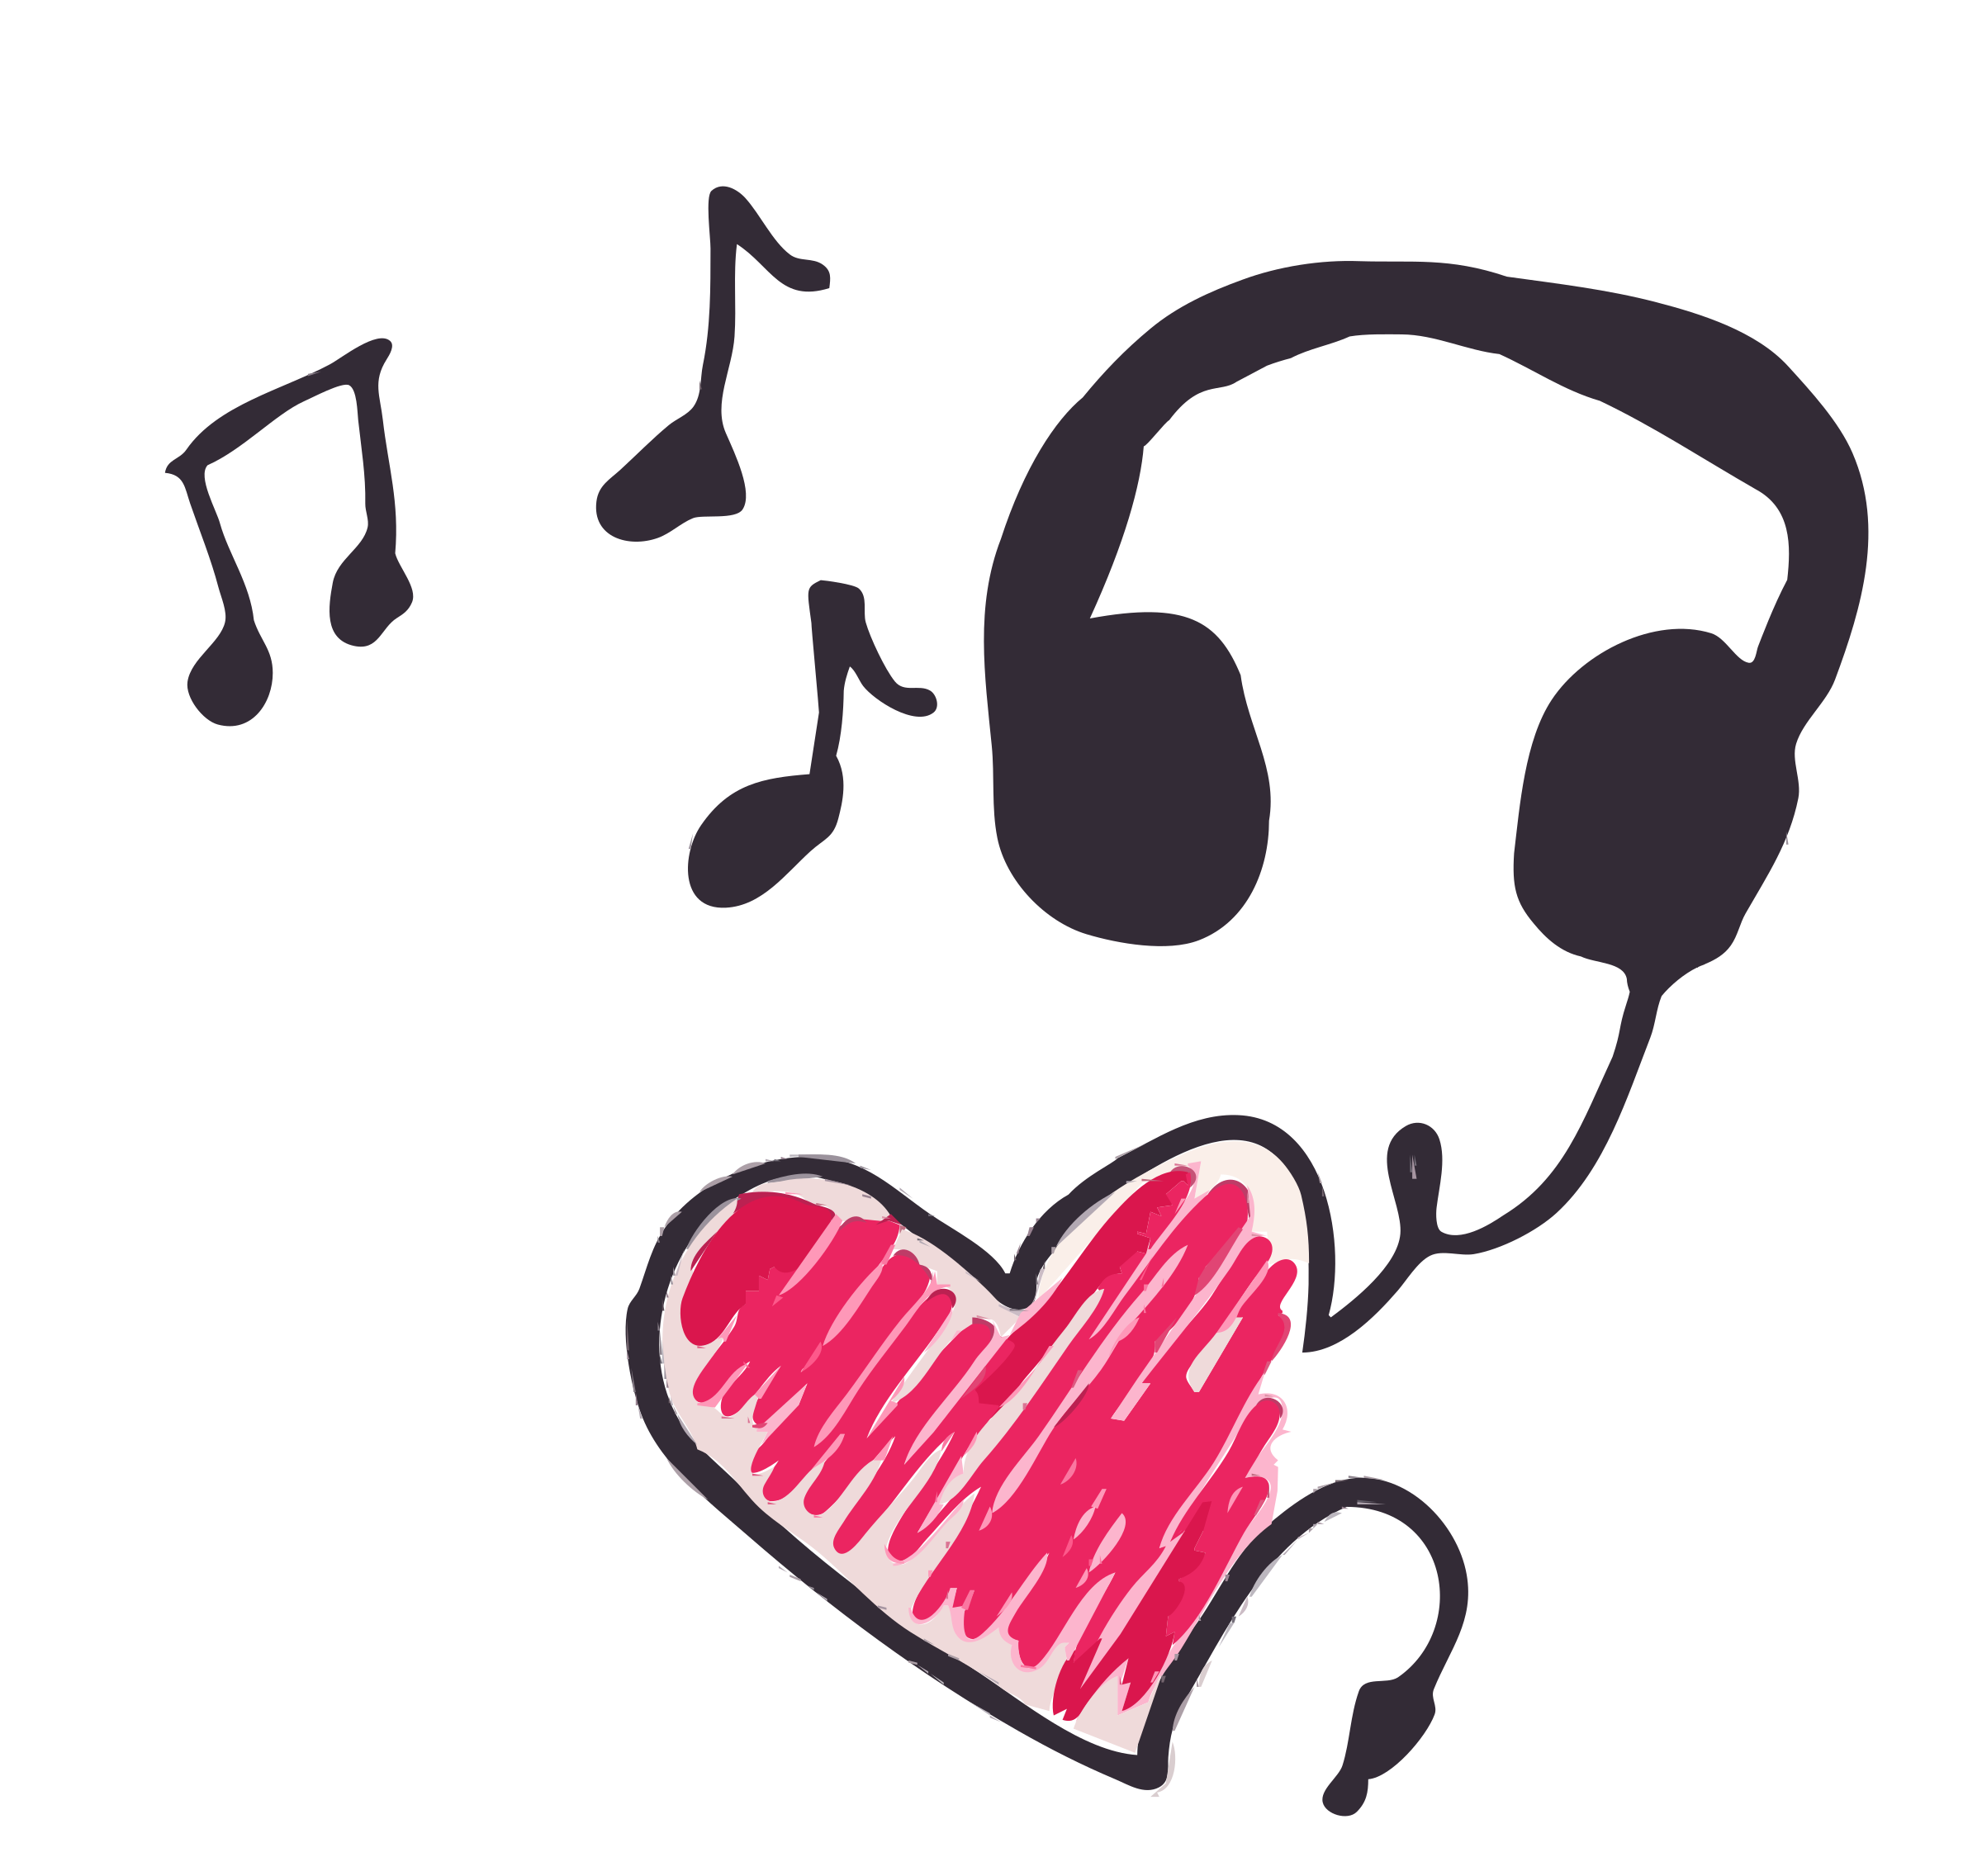 music note clipart heart